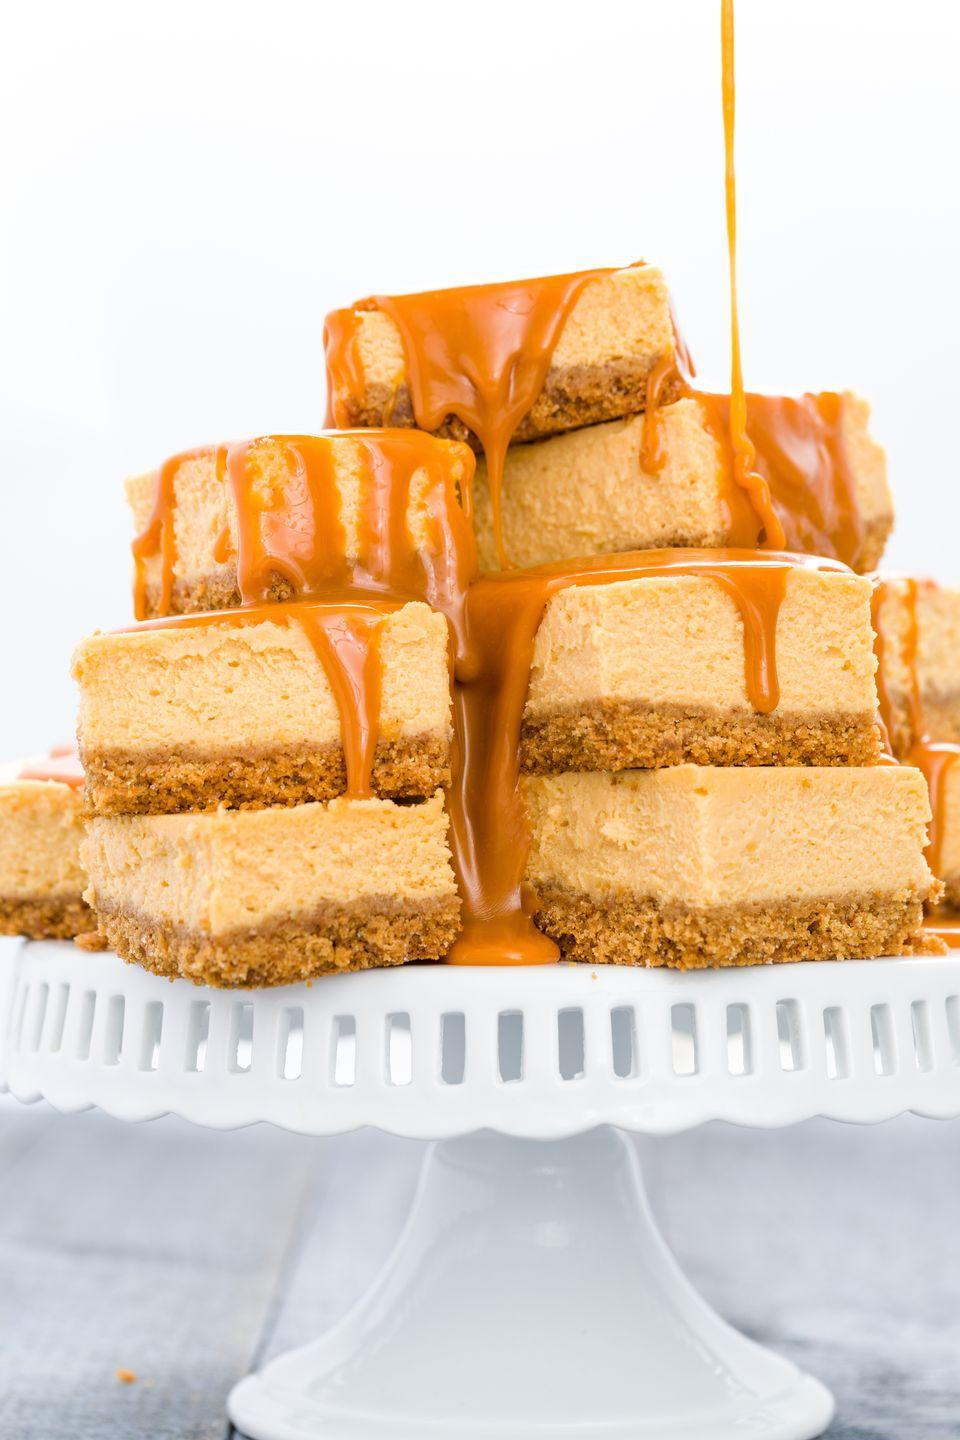 """<p>With a warm glaze, these cheesecake bars are a butterscotch lover's dream.</p><p>Get the recipe from <a href=""""https://www.delish.com/cooking/recipe-ideas/recipes/a43591/butterscotch-cheesecake-bars-recipe/"""" rel=""""nofollow noopener"""" target=""""_blank"""" data-ylk=""""slk:Delish"""" class=""""link rapid-noclick-resp"""">Delish</a>.</p>"""